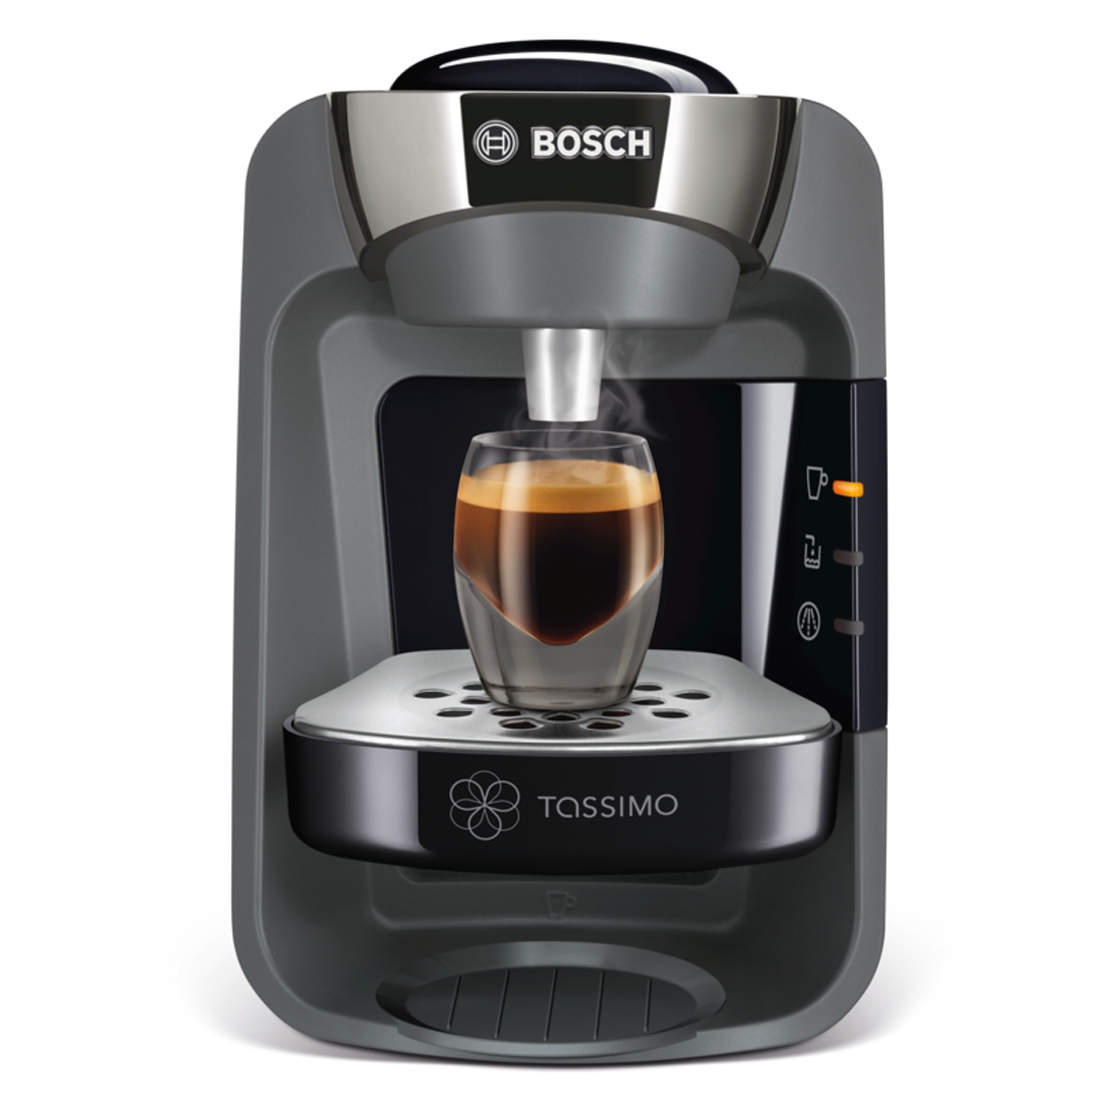 tassimo suny tas3202gb costa coffee hot drinks machine 0 8l 1300w bosch grade c 4242002772967 ebay. Black Bedroom Furniture Sets. Home Design Ideas